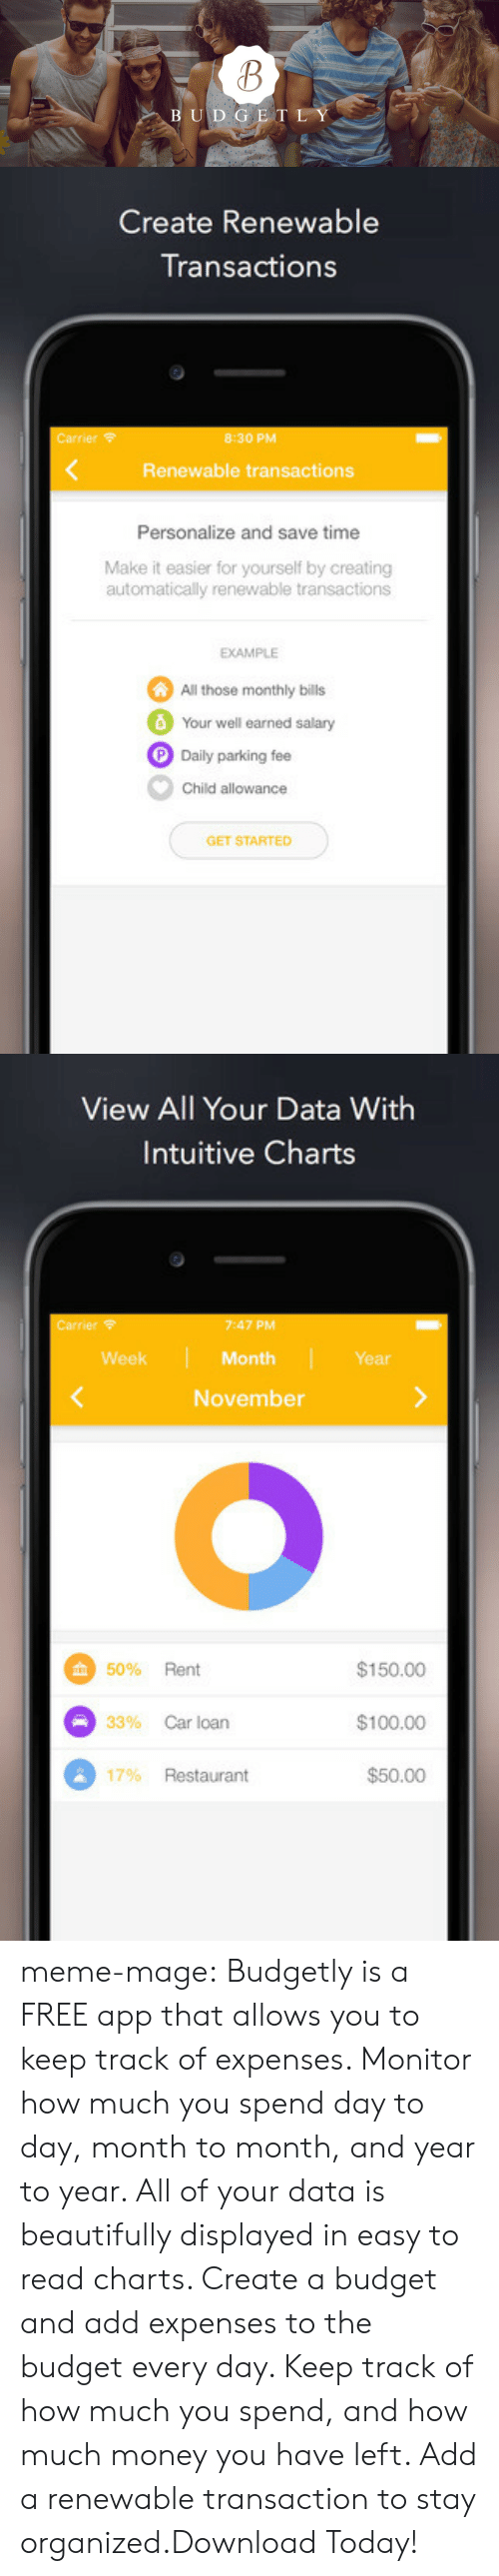 Apple, Meme, and Money: U D G E T L Y   Create Renewable  Transactions  Carrier  8:30 PM  <  Renewable transactions  Personalize and save time  Make it easier for yourself by creating  automatically renewable transactions  EXAMPLE  All those monthly bills  Your well earned salary  Daily parking fee  Child allowance  GET STARTED   View All Your Data With  Intuitive Charts  Carrier  7:47 PM  Month  November  Week  Year  $150.00  $100.00  $50.00  50% Rent  33%  Car loan  17% Restaurant meme-mage:    Budgetly is a FREE app that allows you to keep track of expenses. Monitor how much you spend day to day, month to month, and year to year. All of your data is beautifully displayed in easy to read charts. Create a budget and add expenses to the budget every day. Keep track of how much you spend, and how much money you have left. Add a renewable transaction to stay organized.Download Today!